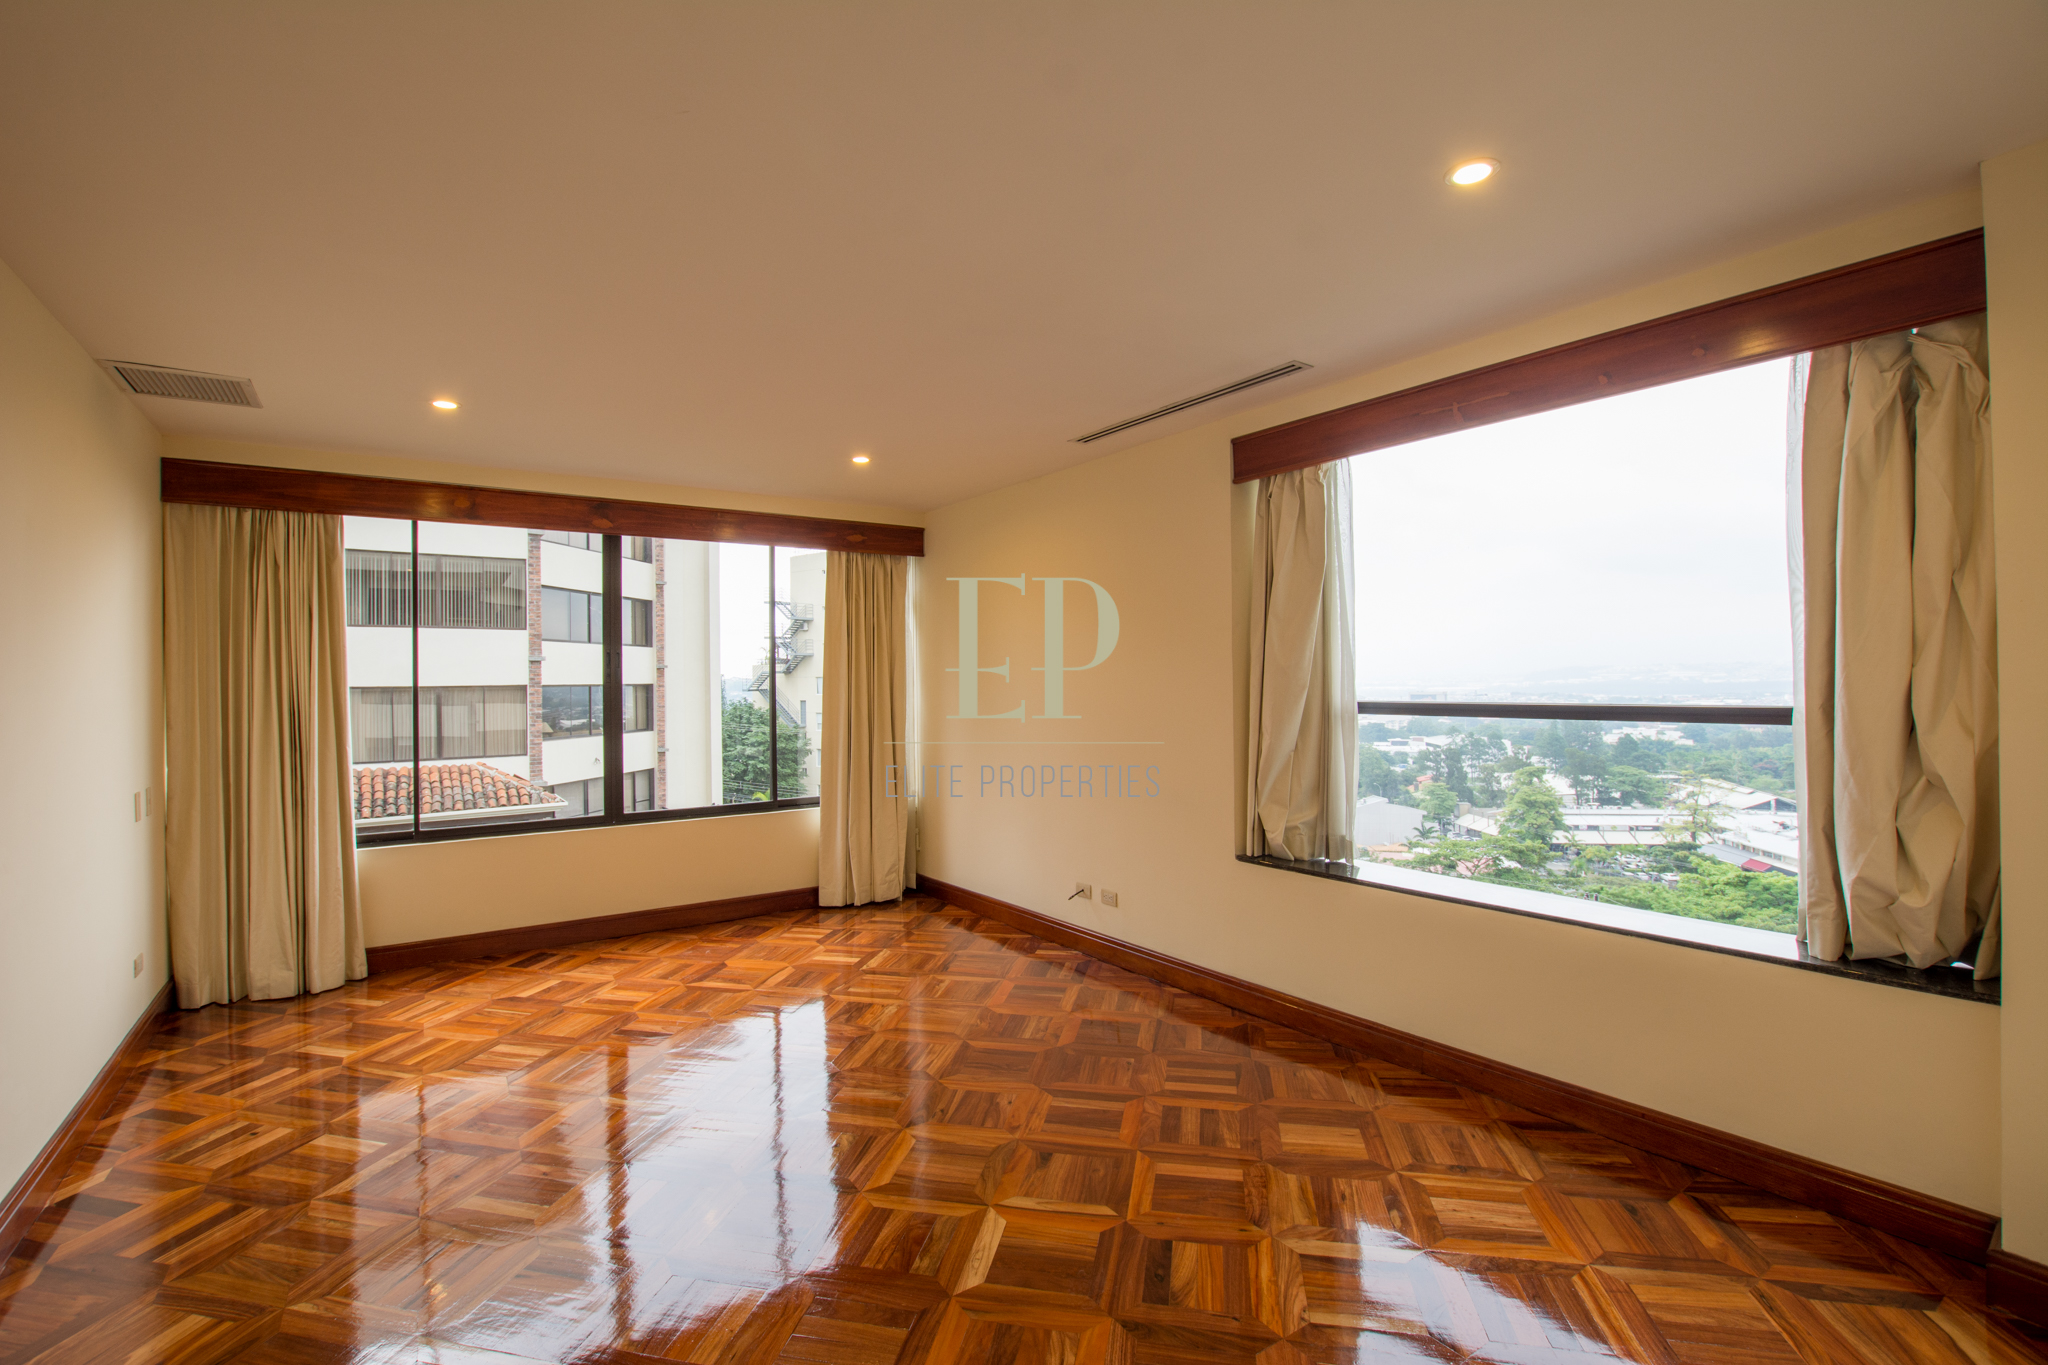 Spacious apartment on the 4th floor in Escazu